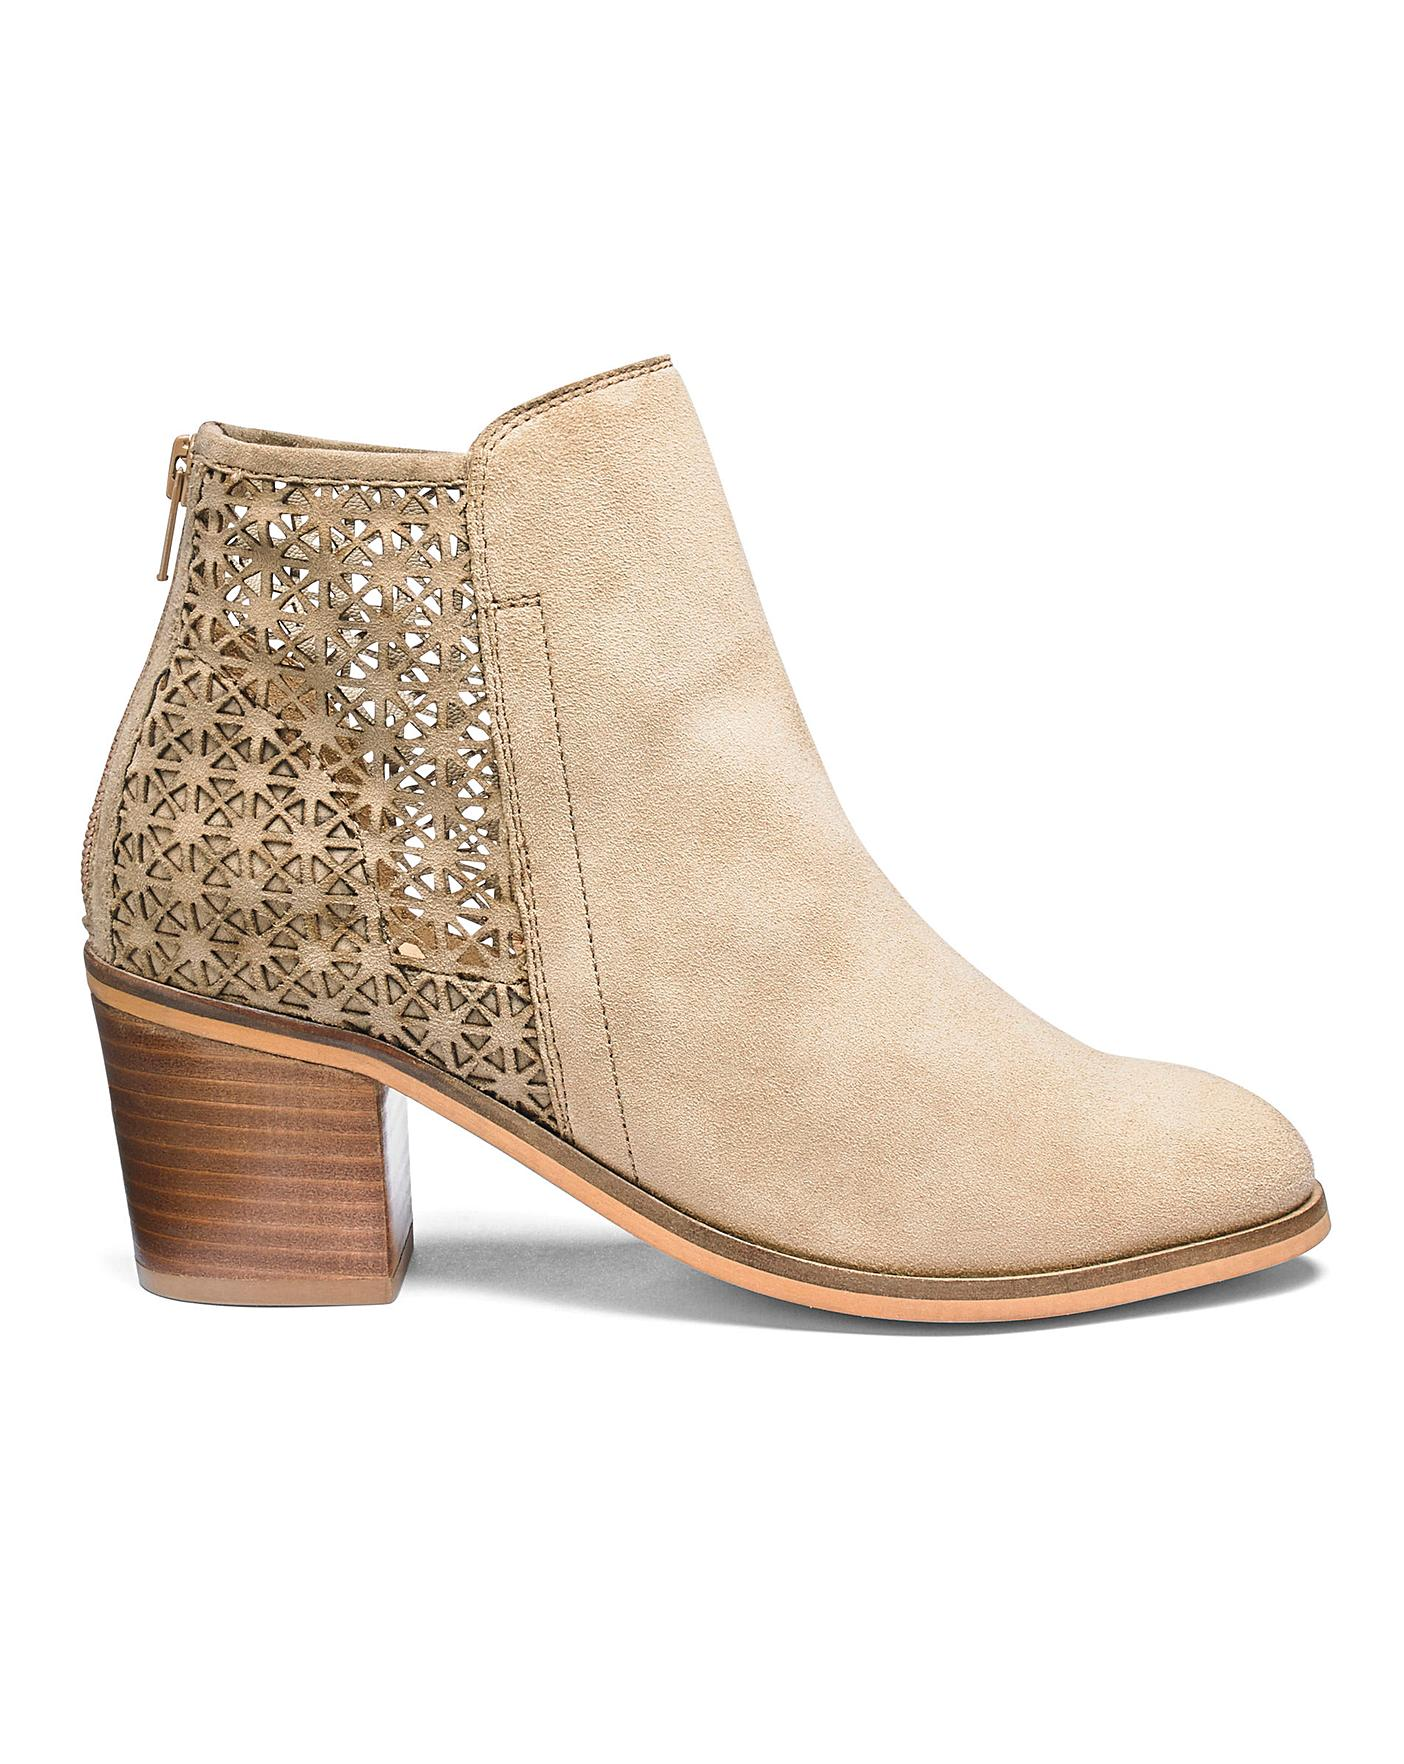 Womens Heavenly Soles Suede Ankle Boots Simply Be